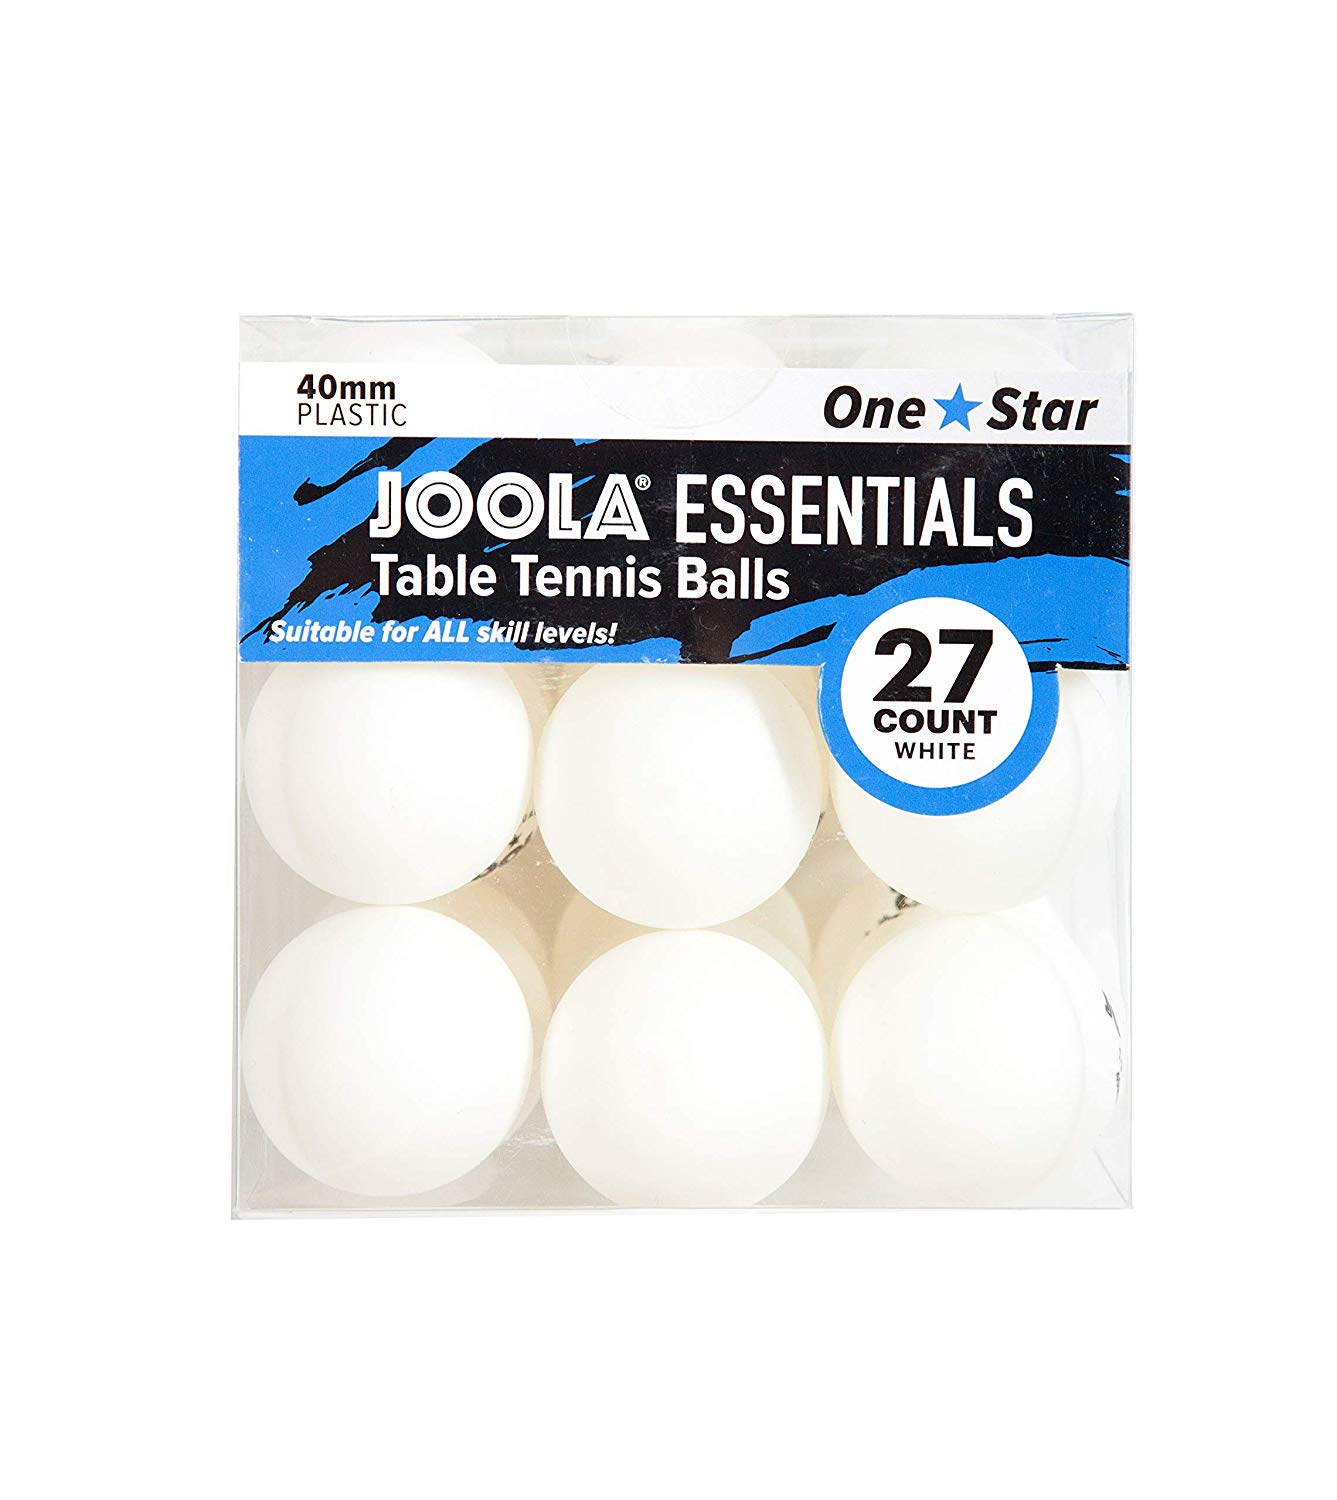 JOOLA Essentials 40mm Table Tennis Balls, White, 27ct